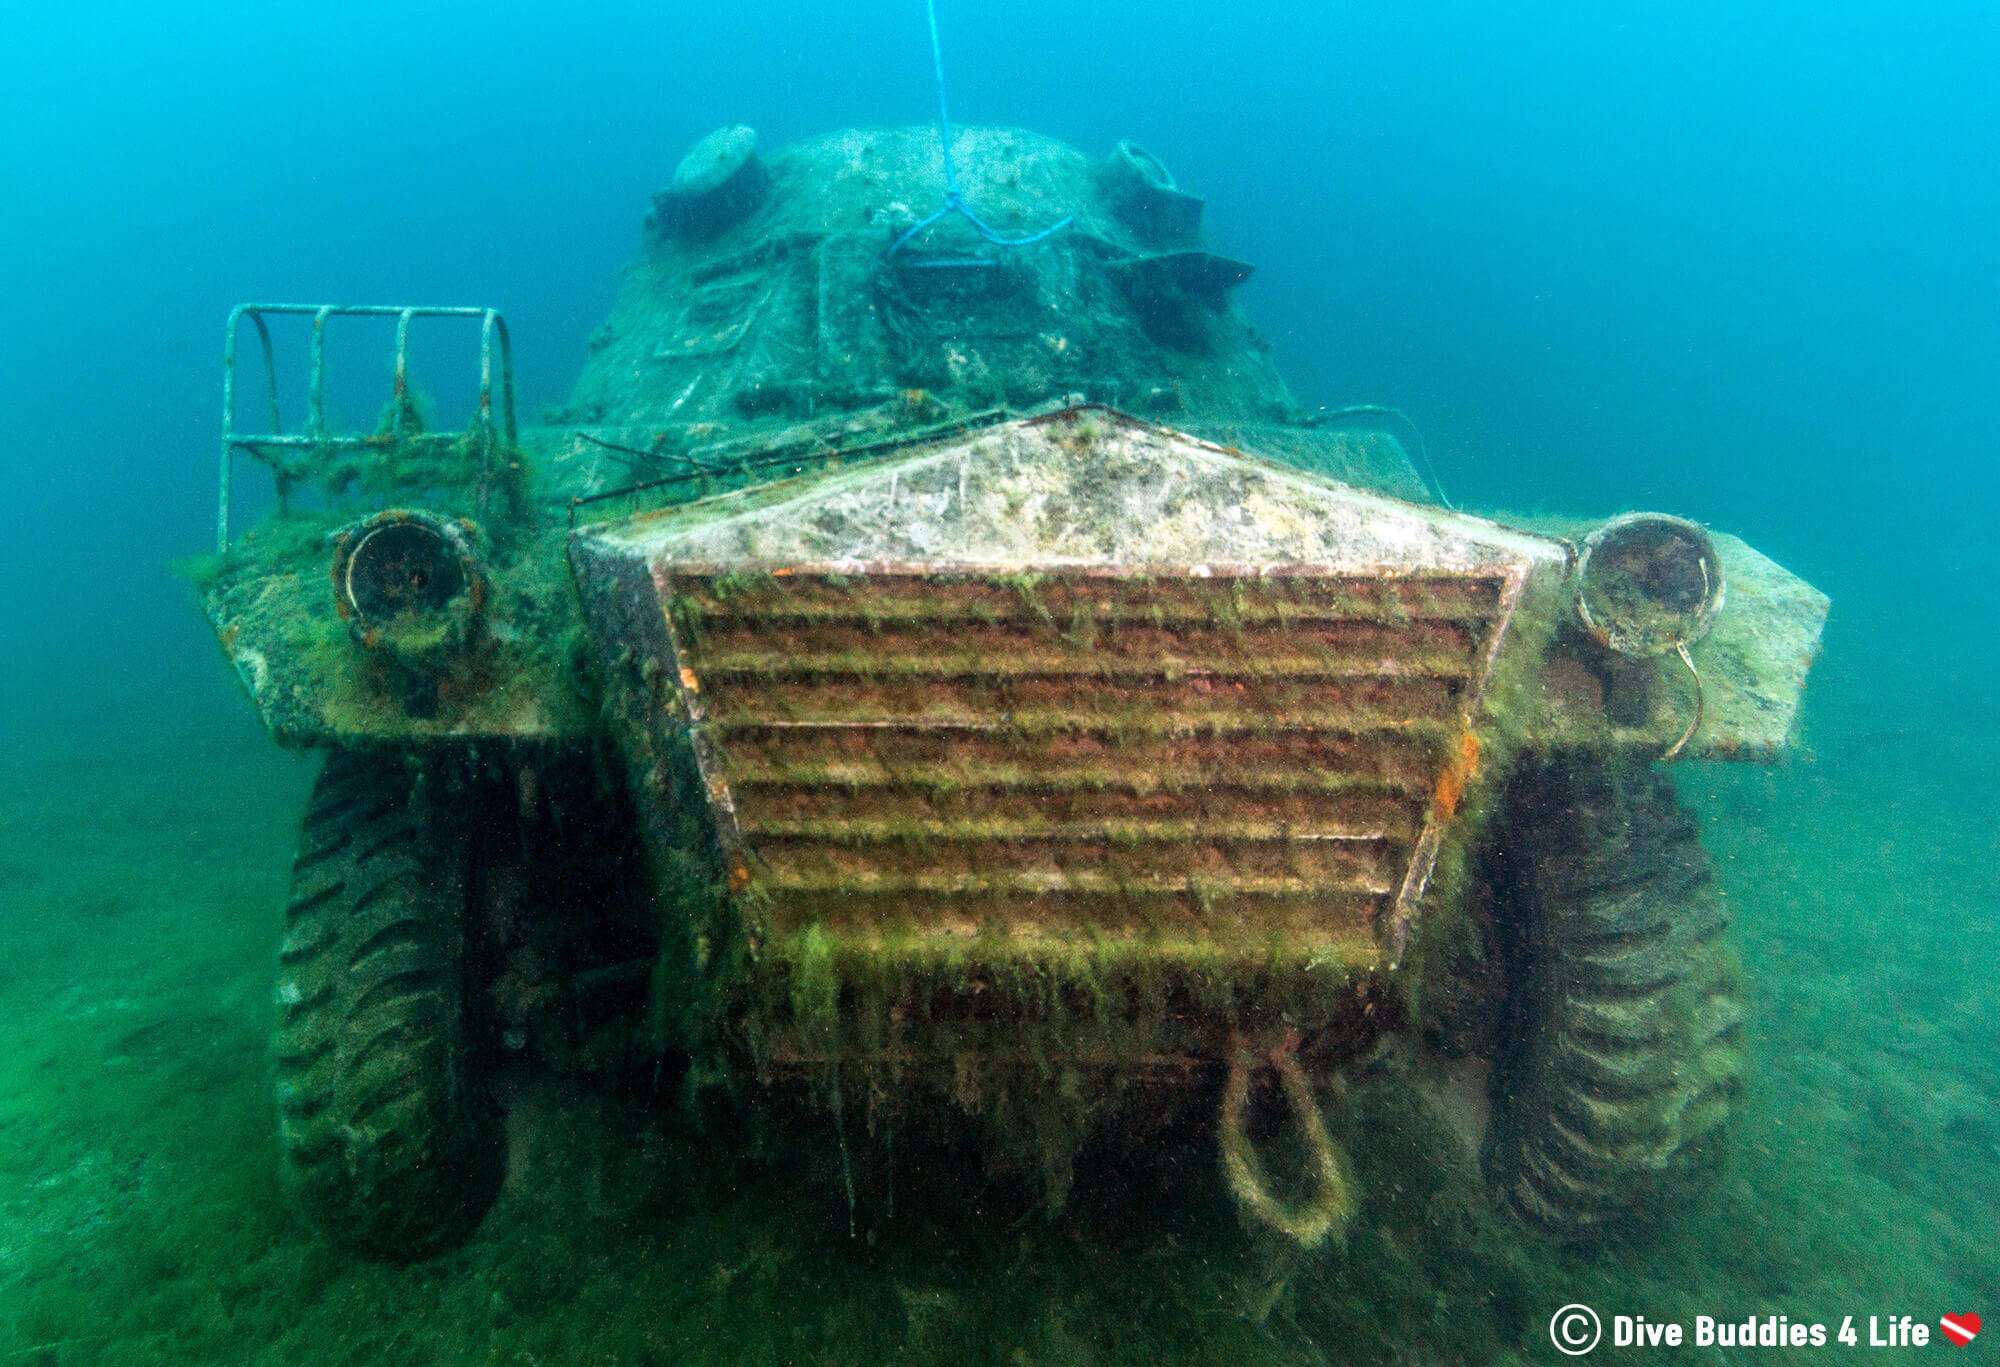 The Front Part Of A Sunken Army Vehicle Underwater At Chepstow, Wales, UK